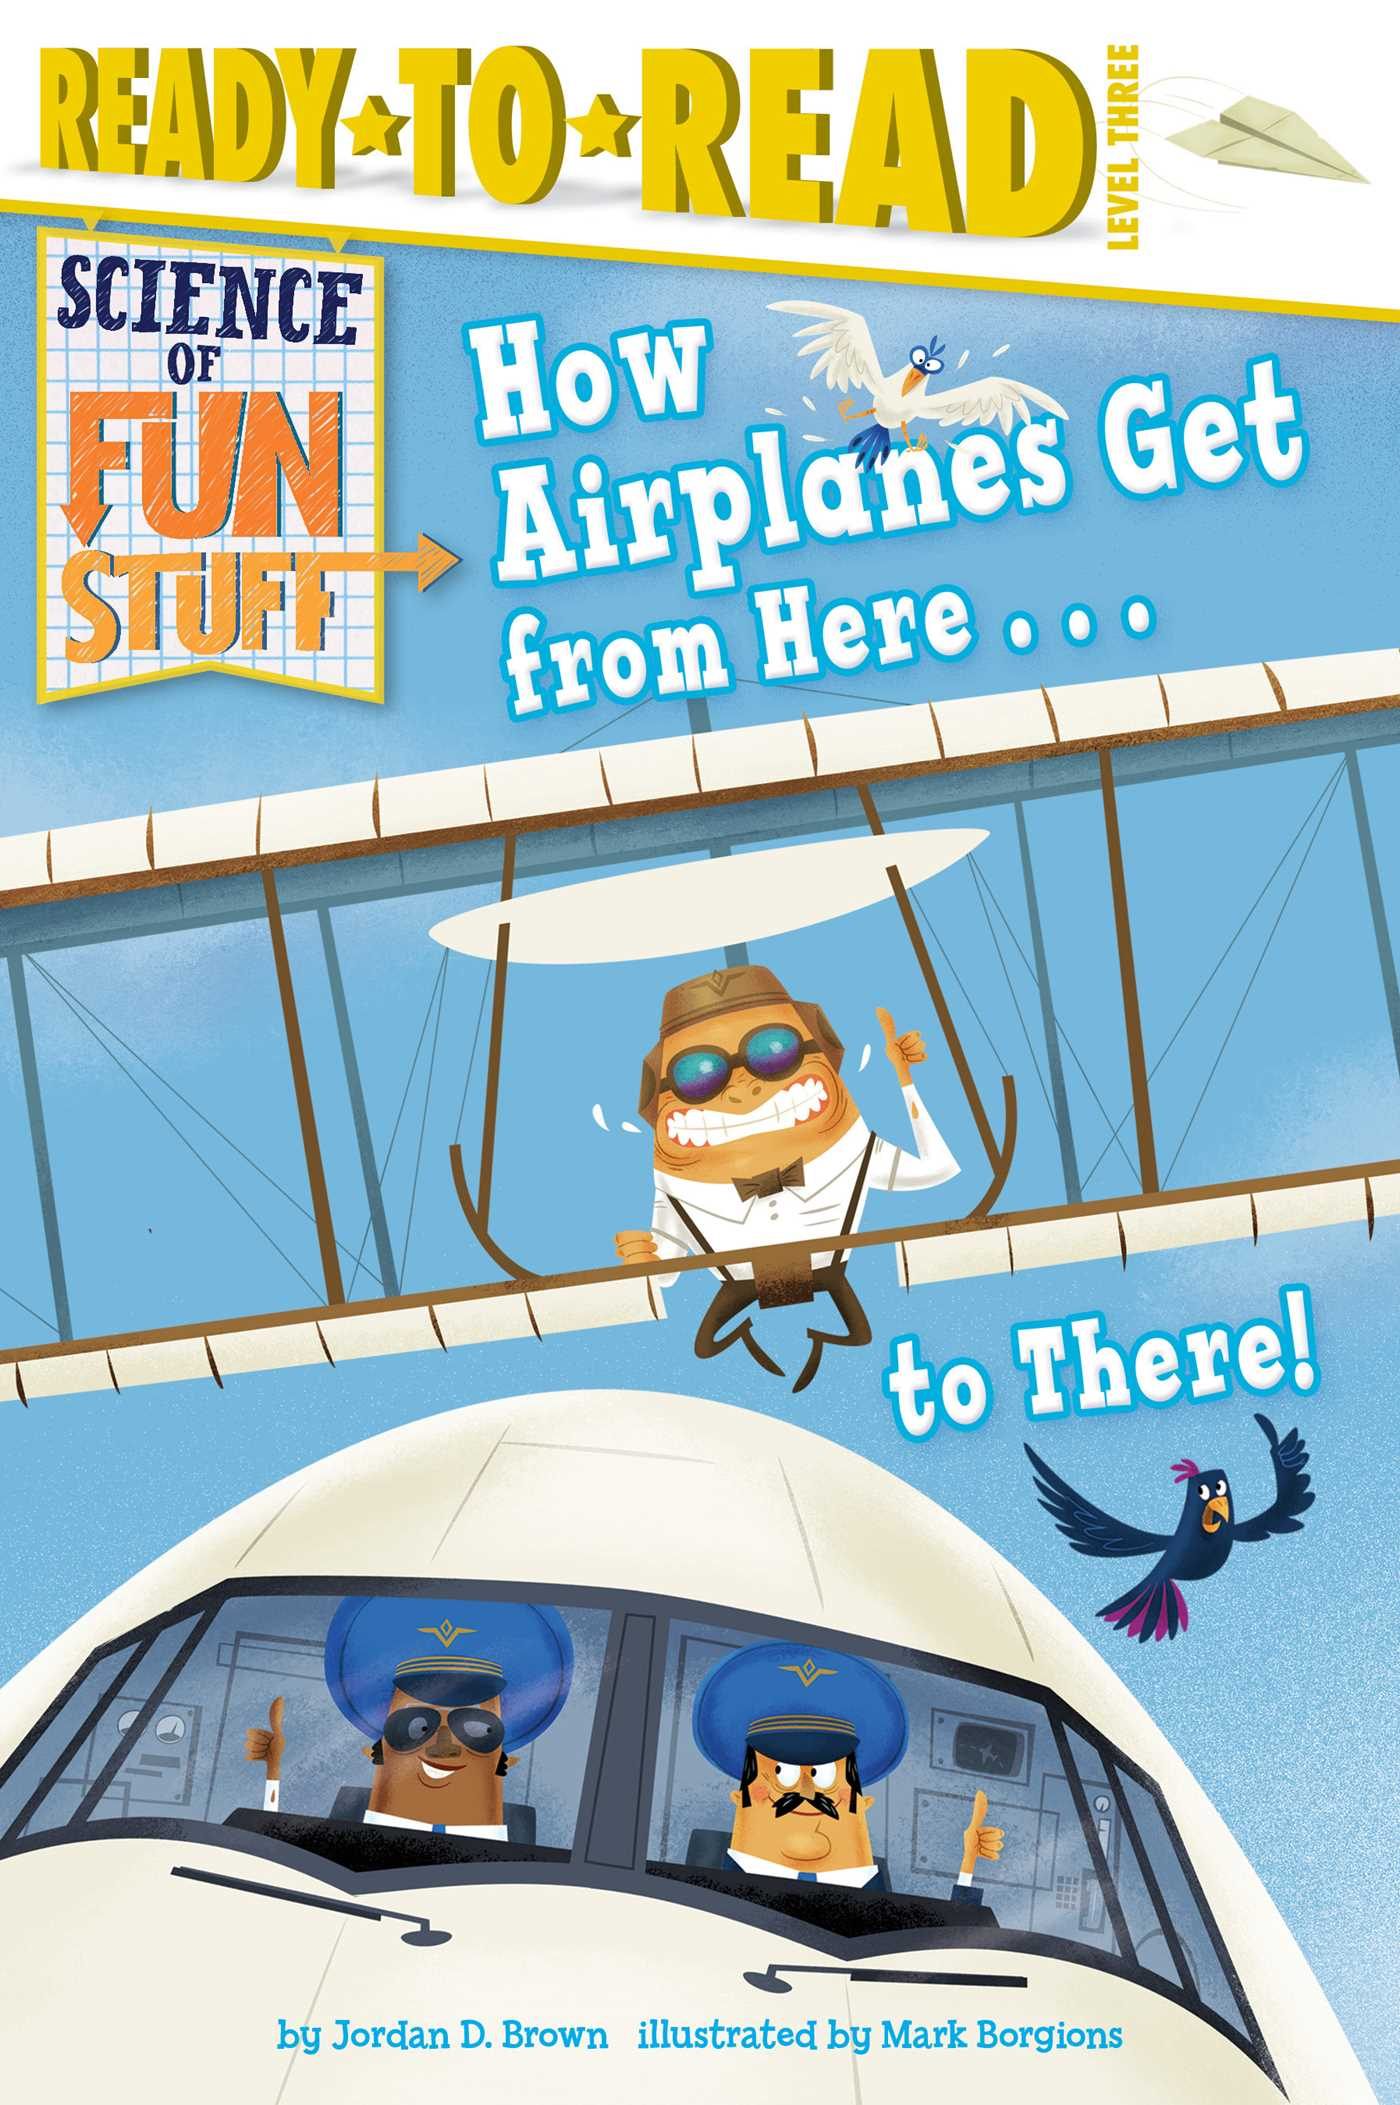 How airplanes get from here to there 9781481461641 hr